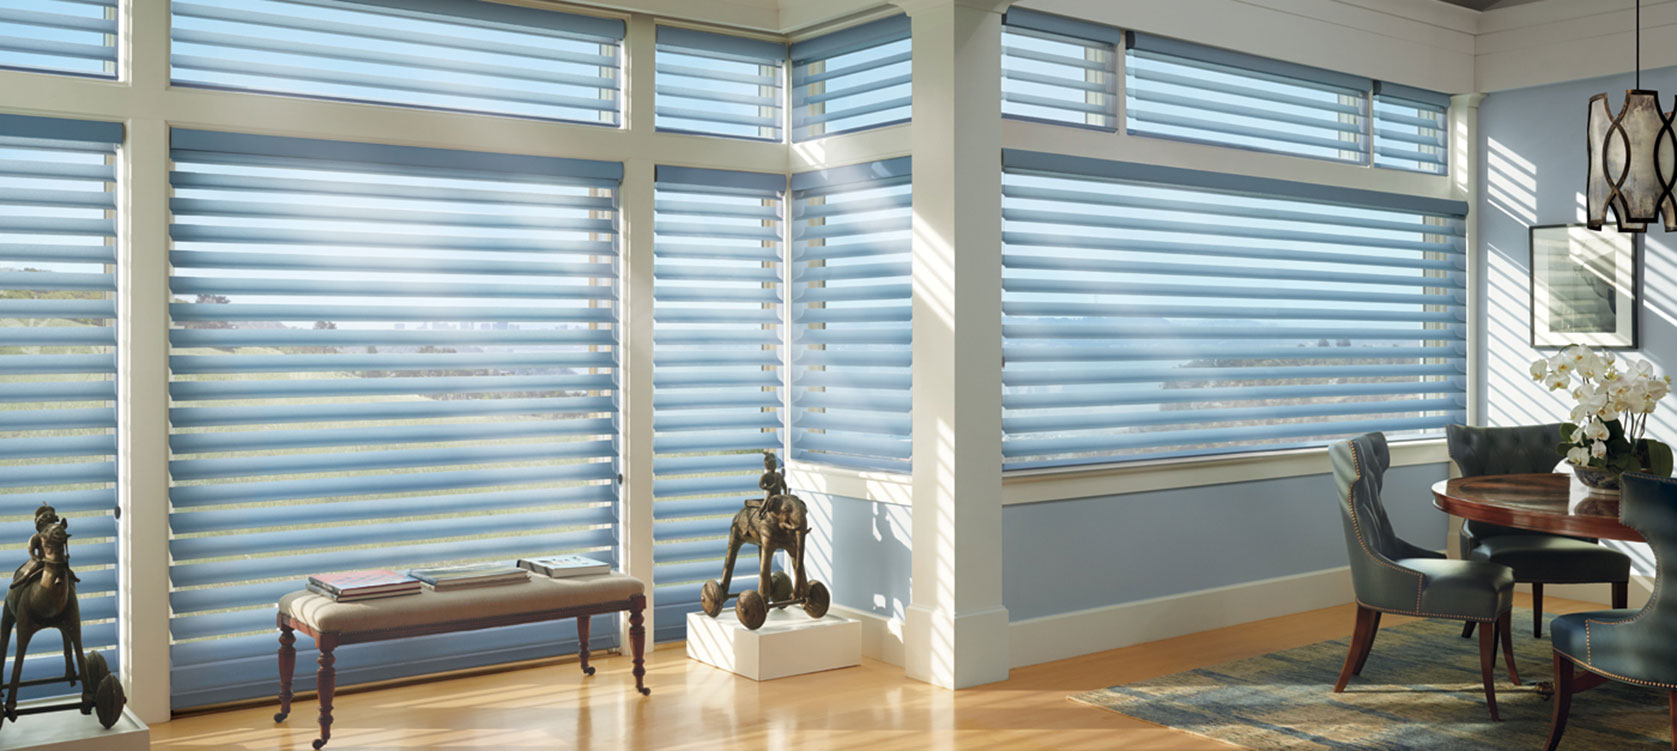 The drapery guy westlake village ca window treatments for Hunter douglas motorized blinds troubleshooting